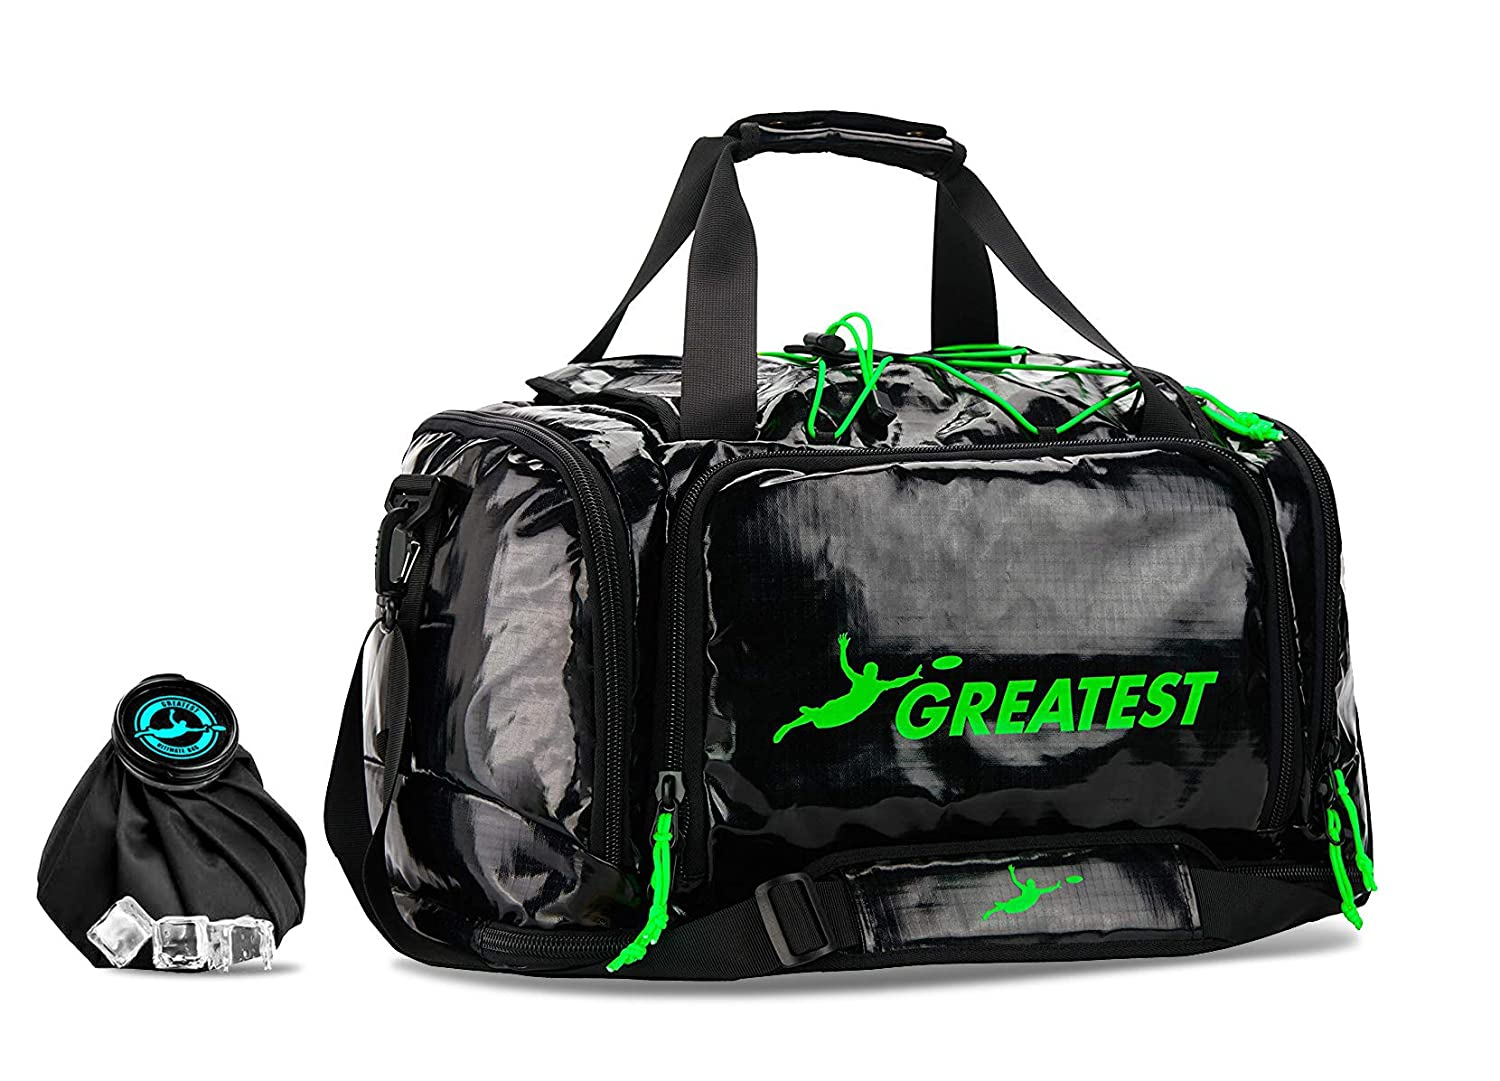 GREATEST Ultimate Frisbee Bag 45 Liter. Built in Insulated Cooler Pocket and Organization Compartments. Waterproof Durable Sports Equipment Duffel Backpack for Outdoor Sports Travel More